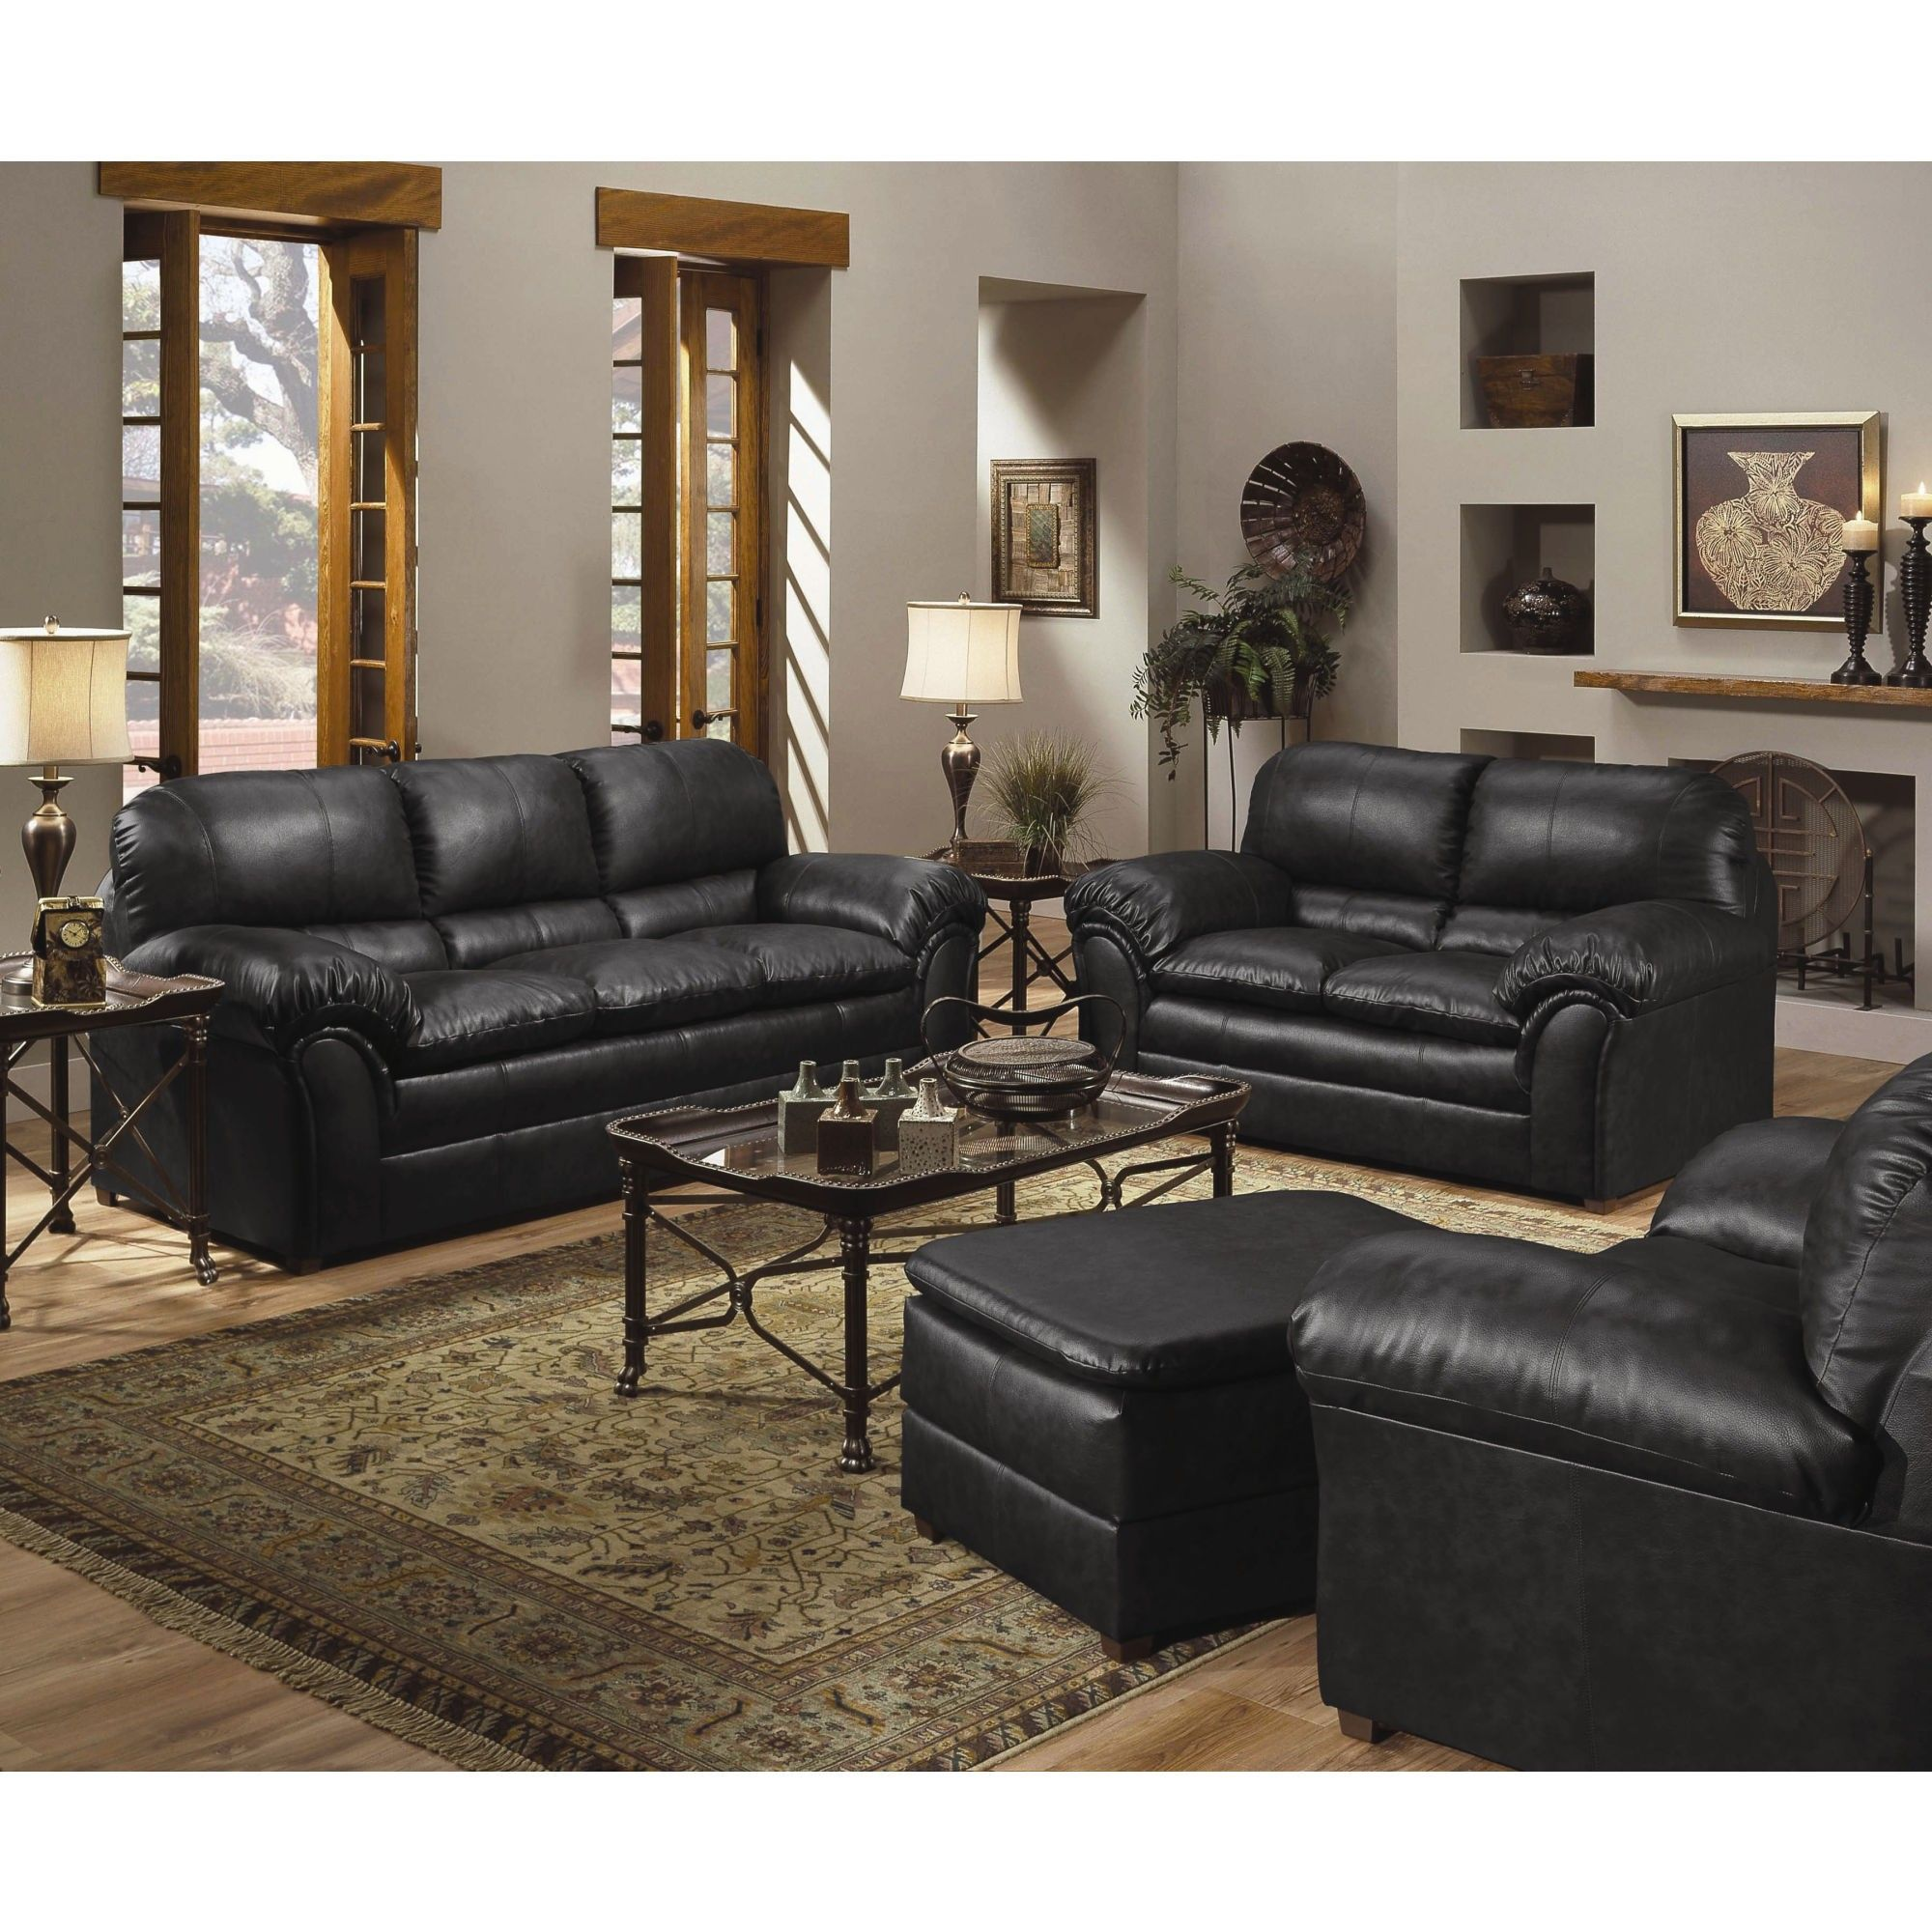 Cool Simmons Upholstery Geneva Sofa And Loveseat Set 6152Sl Frankydiablos Diy Chair Ideas Frankydiabloscom